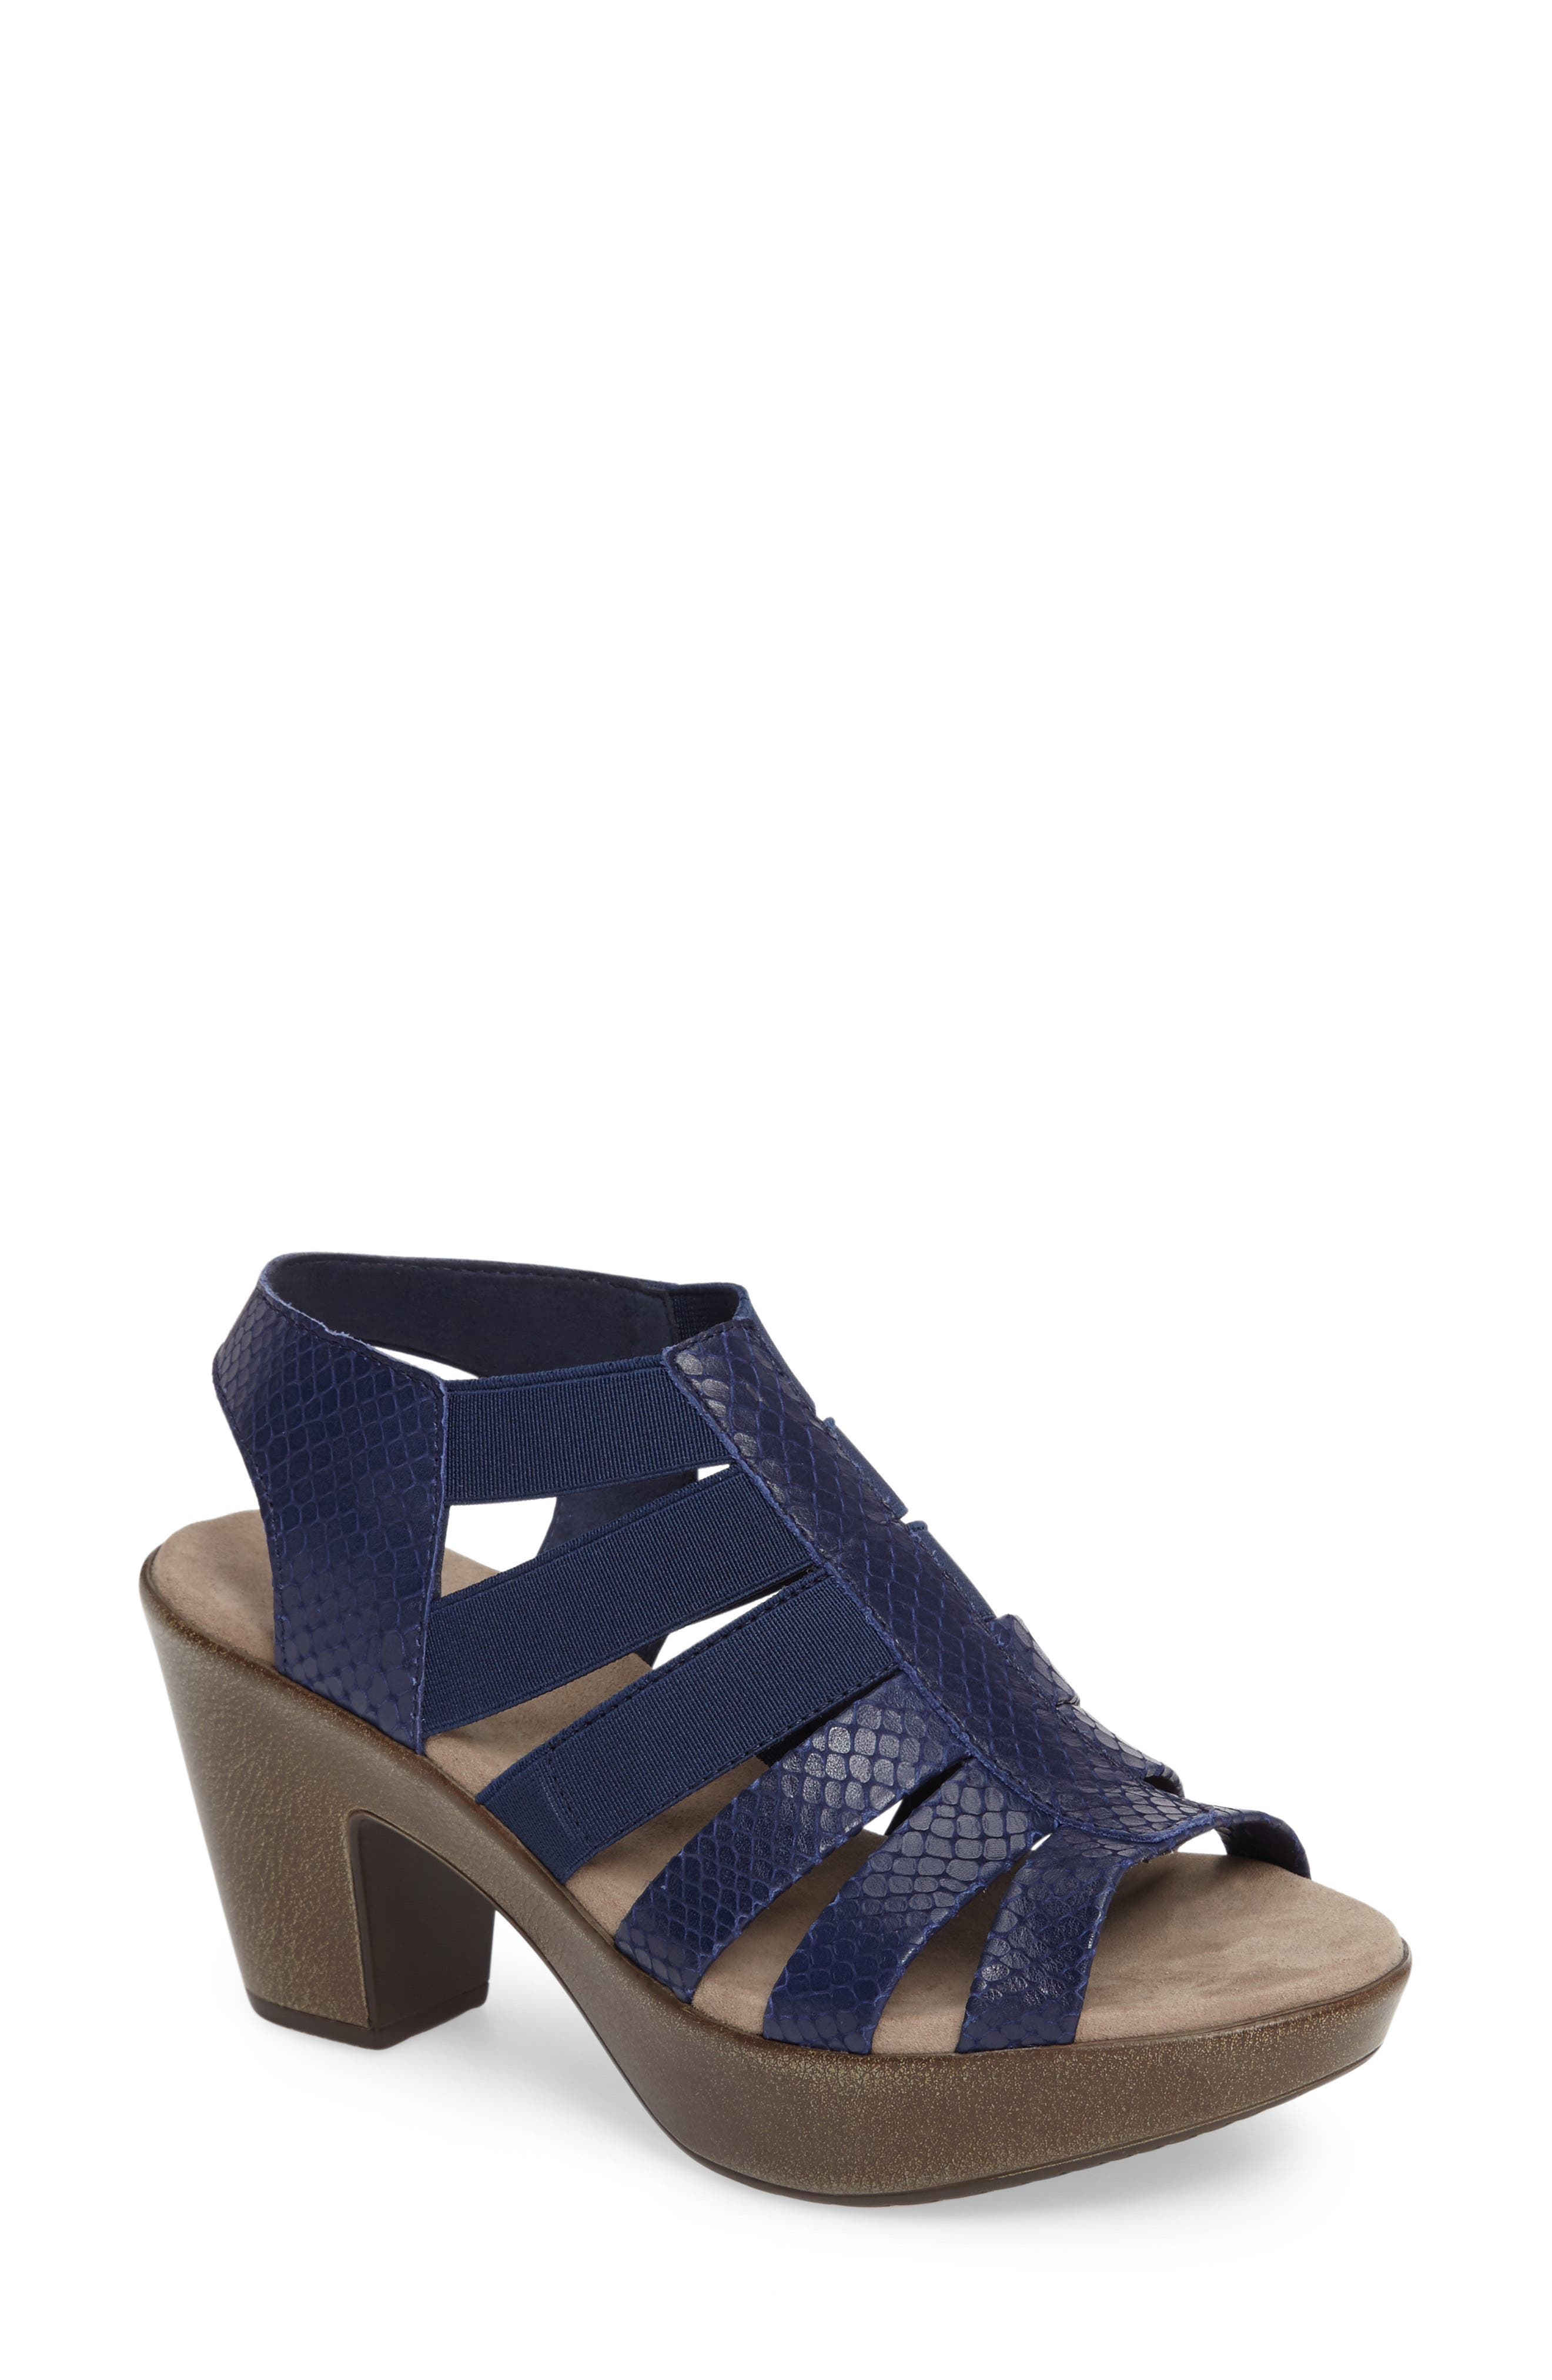 'Cookie' Slingback Sandal,                         Main,                         color, Blue Leather